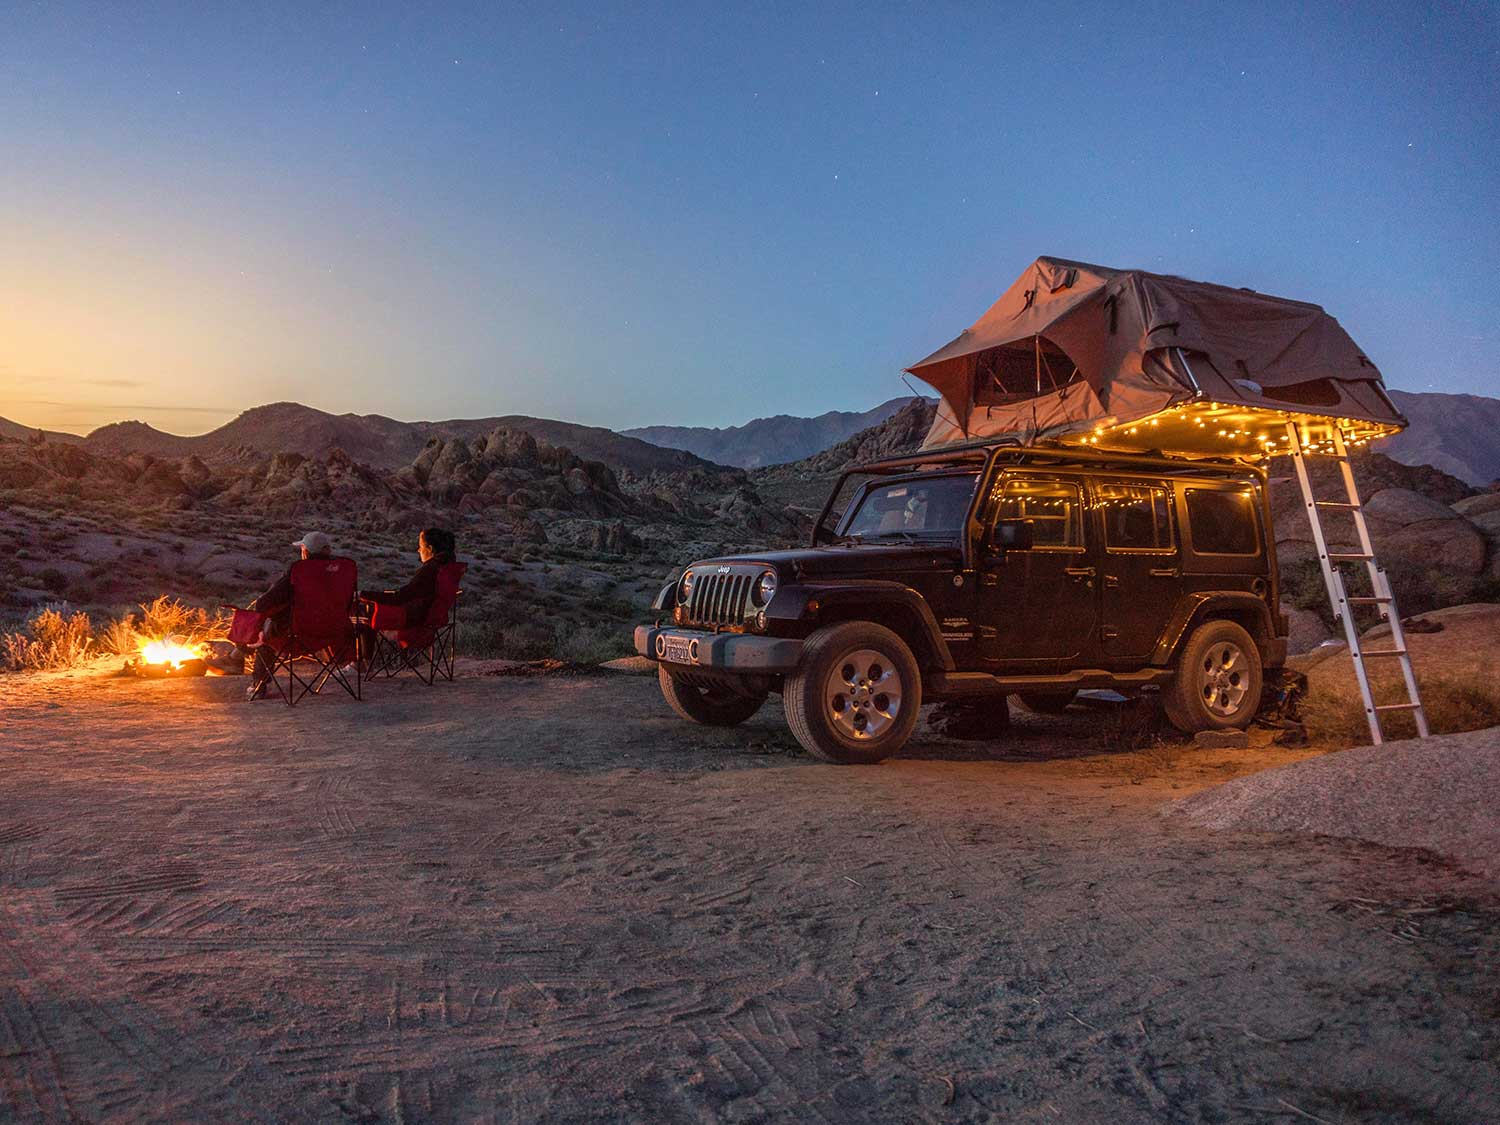 Truck tent on top of jeep.